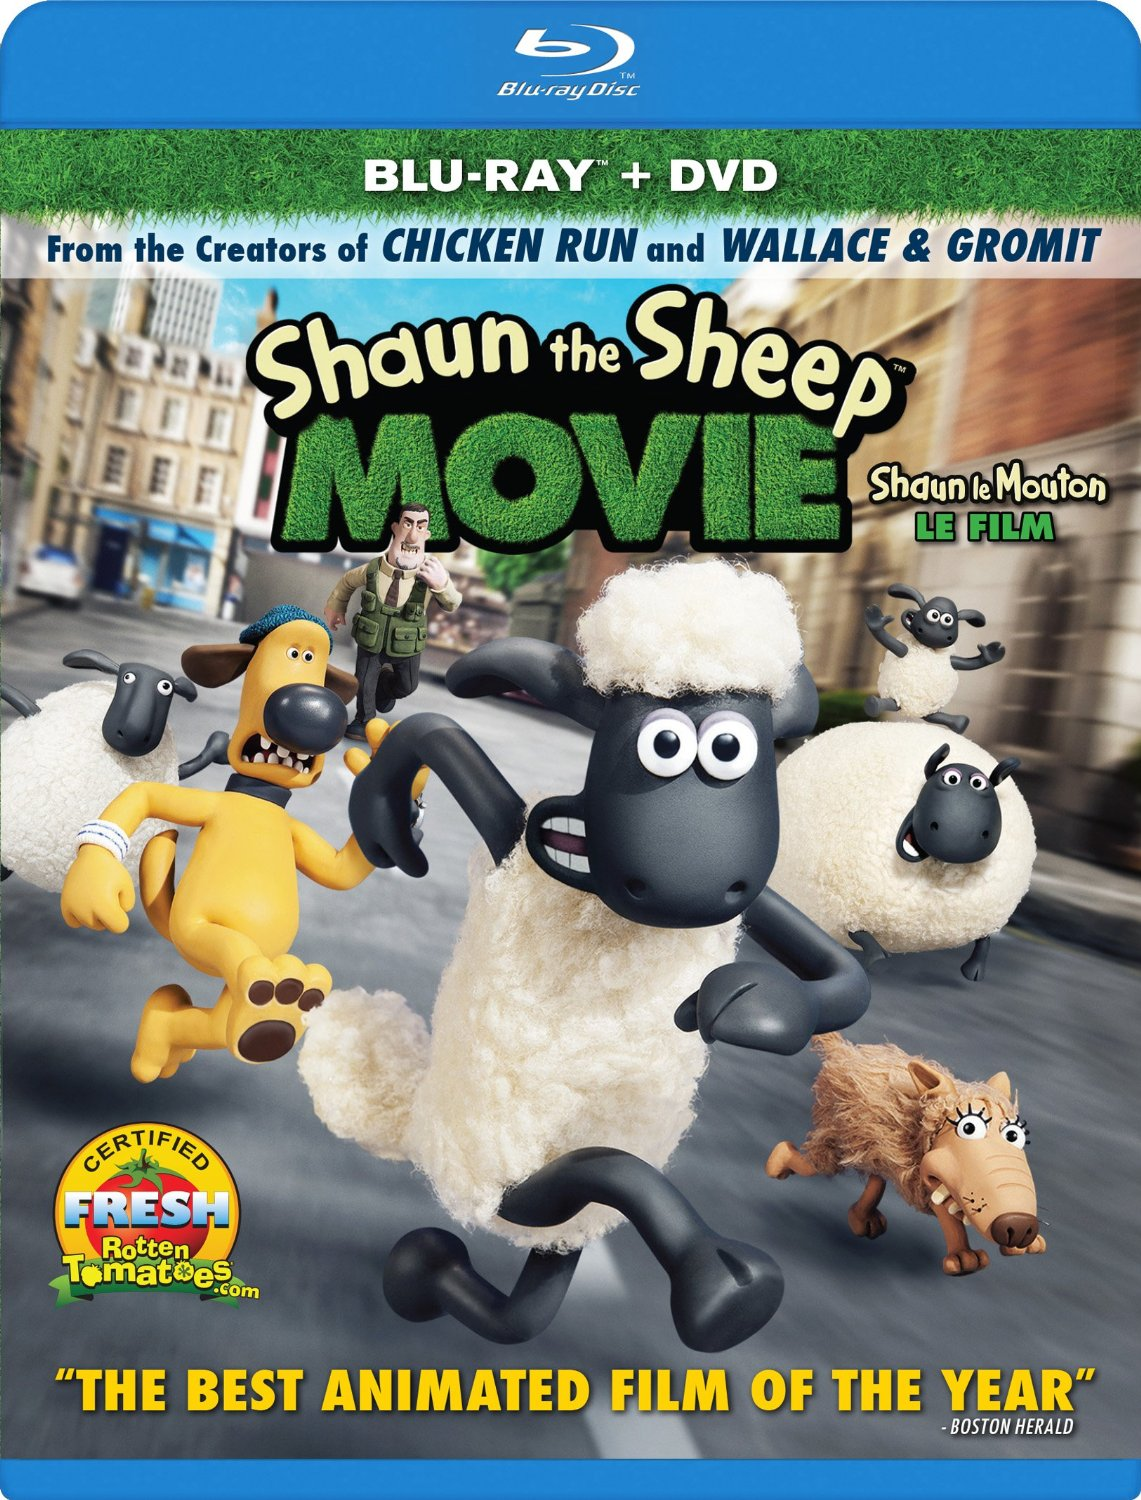 Blu Ray Release Shaun The Sheep Movie One Movie Our Views